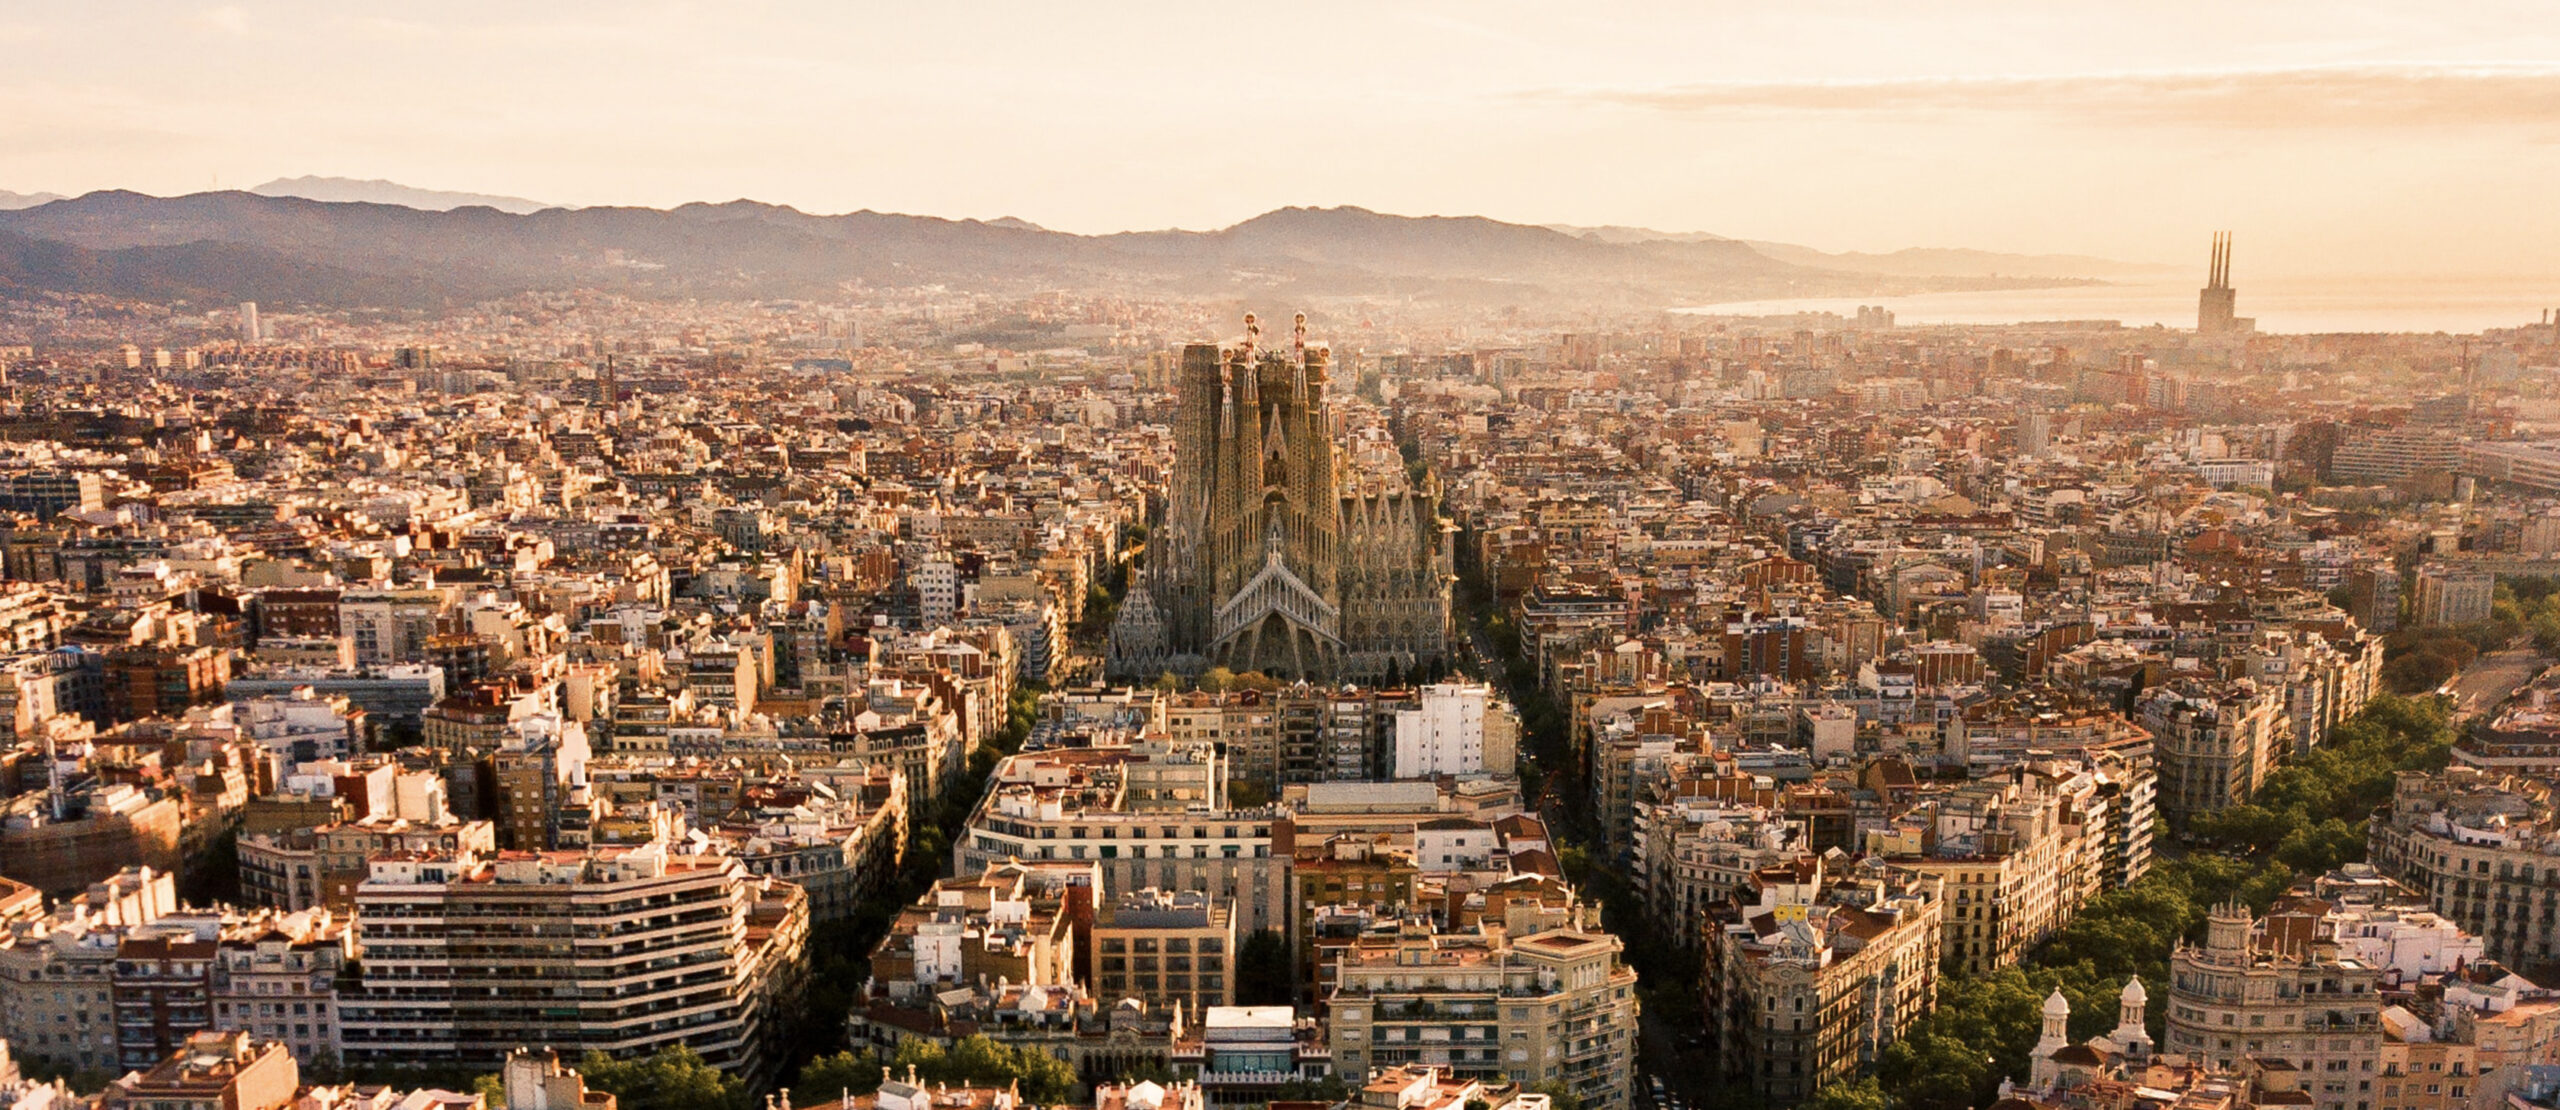 Want to make startup history? Barcelona is the place to be